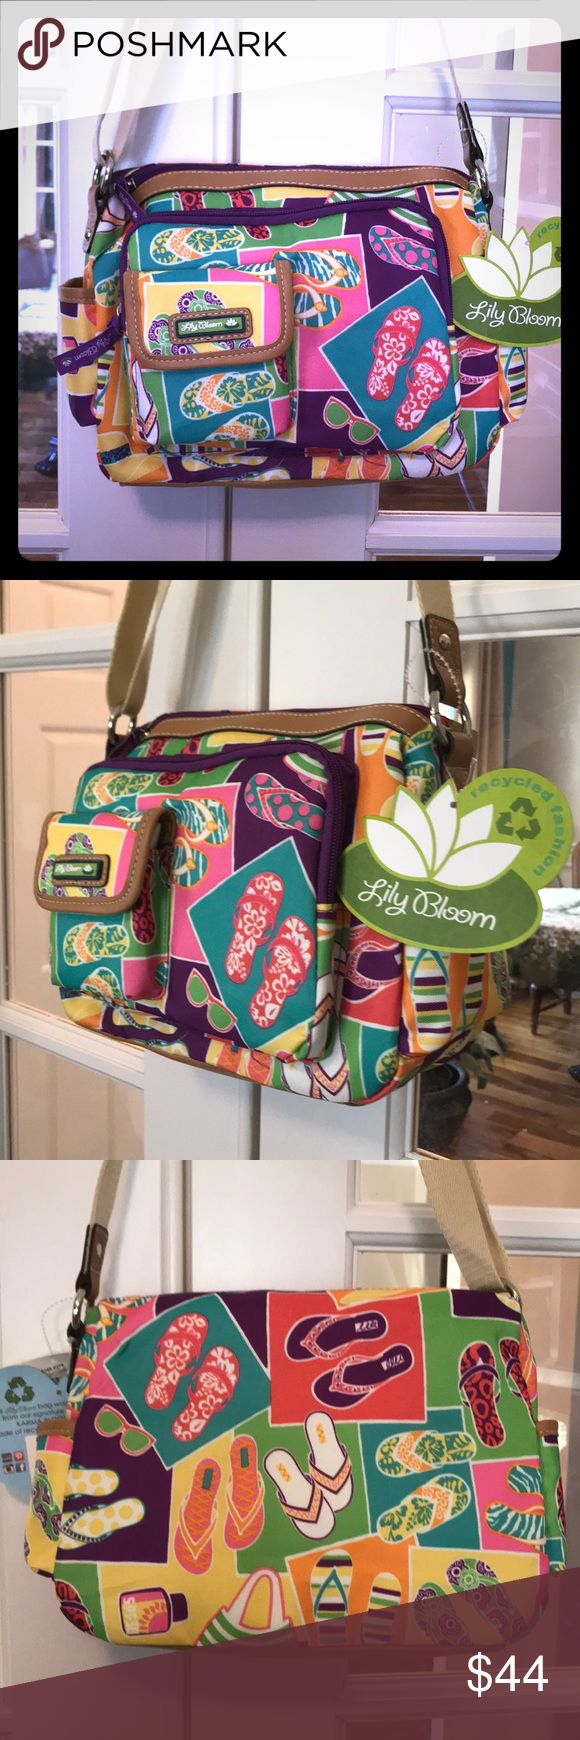 """🆕 Lily Bloom Libby """"Flip Flop"""" Hobo This colorful LilyBloom Flip Flop Bag has many pockets!  All compartments are lined with Lily Bloom fabric and zippers are the Lily Bloom tag. The main compartment opens wide & has a large front zippered pocket on it.  There is also another smaller pocket that snaps closed in it!  Each side of the bag has a slip pocket as well.  The bag is made of Lily Bloom signature fabric KARMA BLOOM made of recycled plastic bottles!   Roughly 12""""L x 8.5""""H x 4""""W.   💞…"""